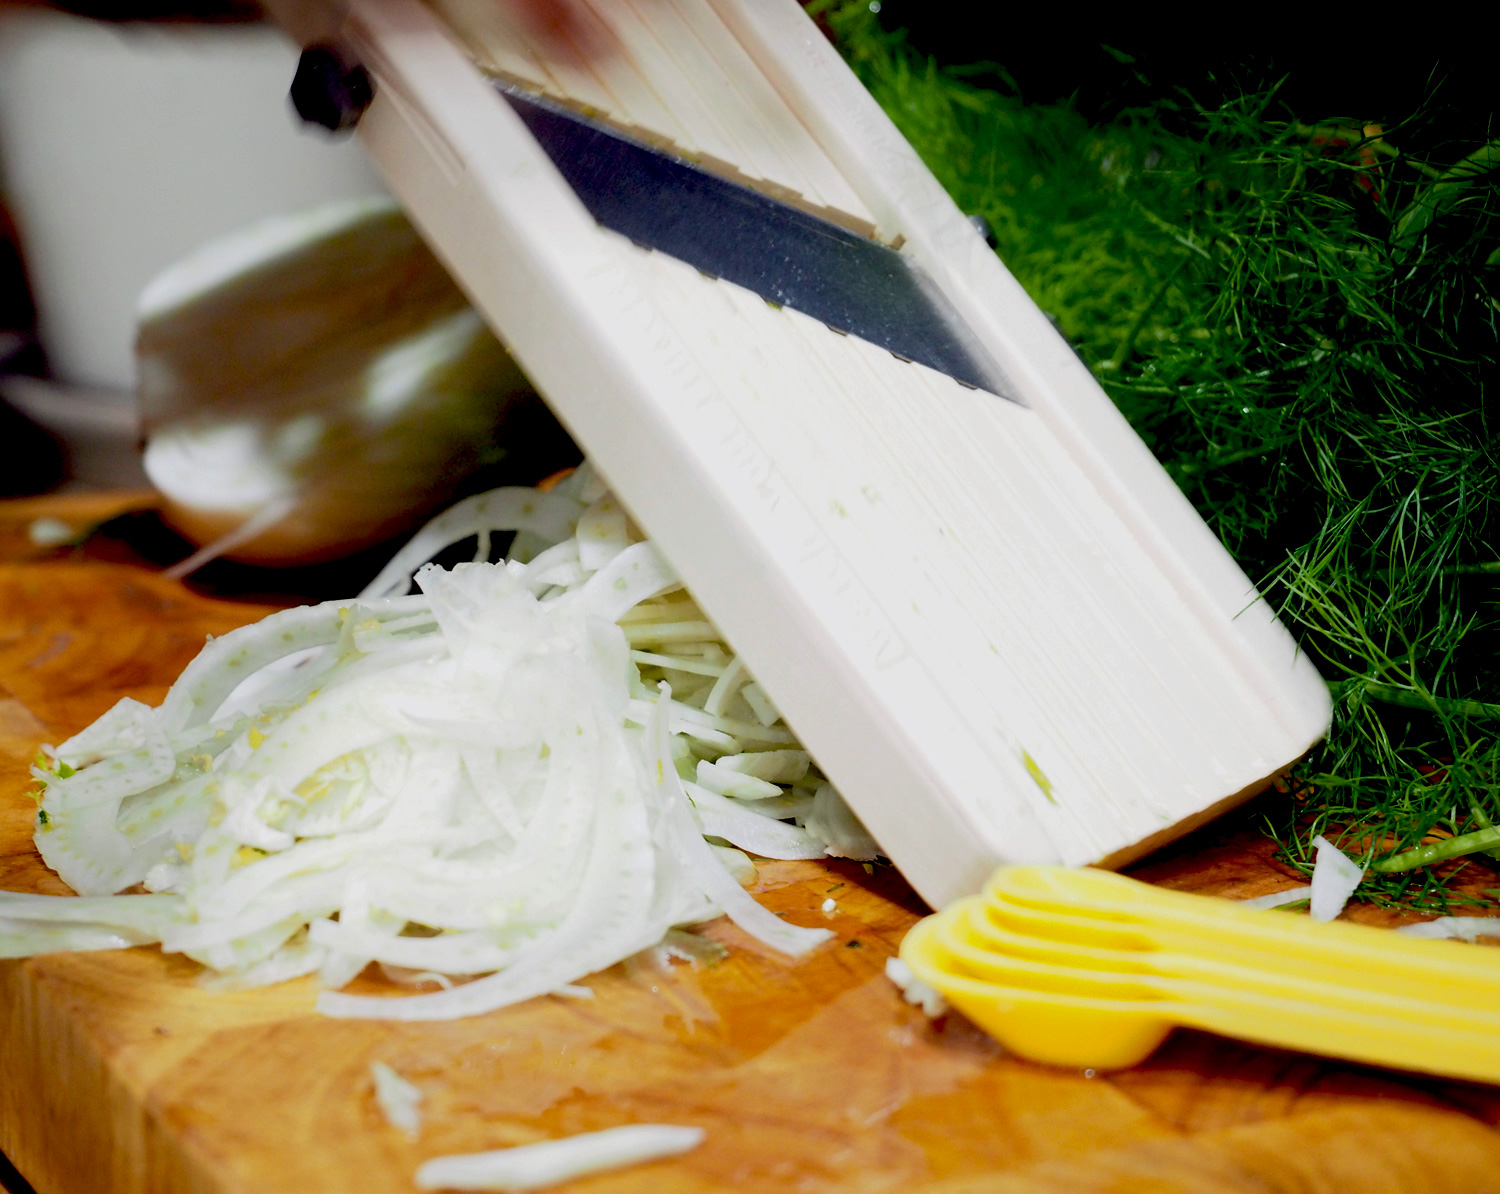 Thin slivers of fennel.  I love using a mandolin, but please watch your fingers!